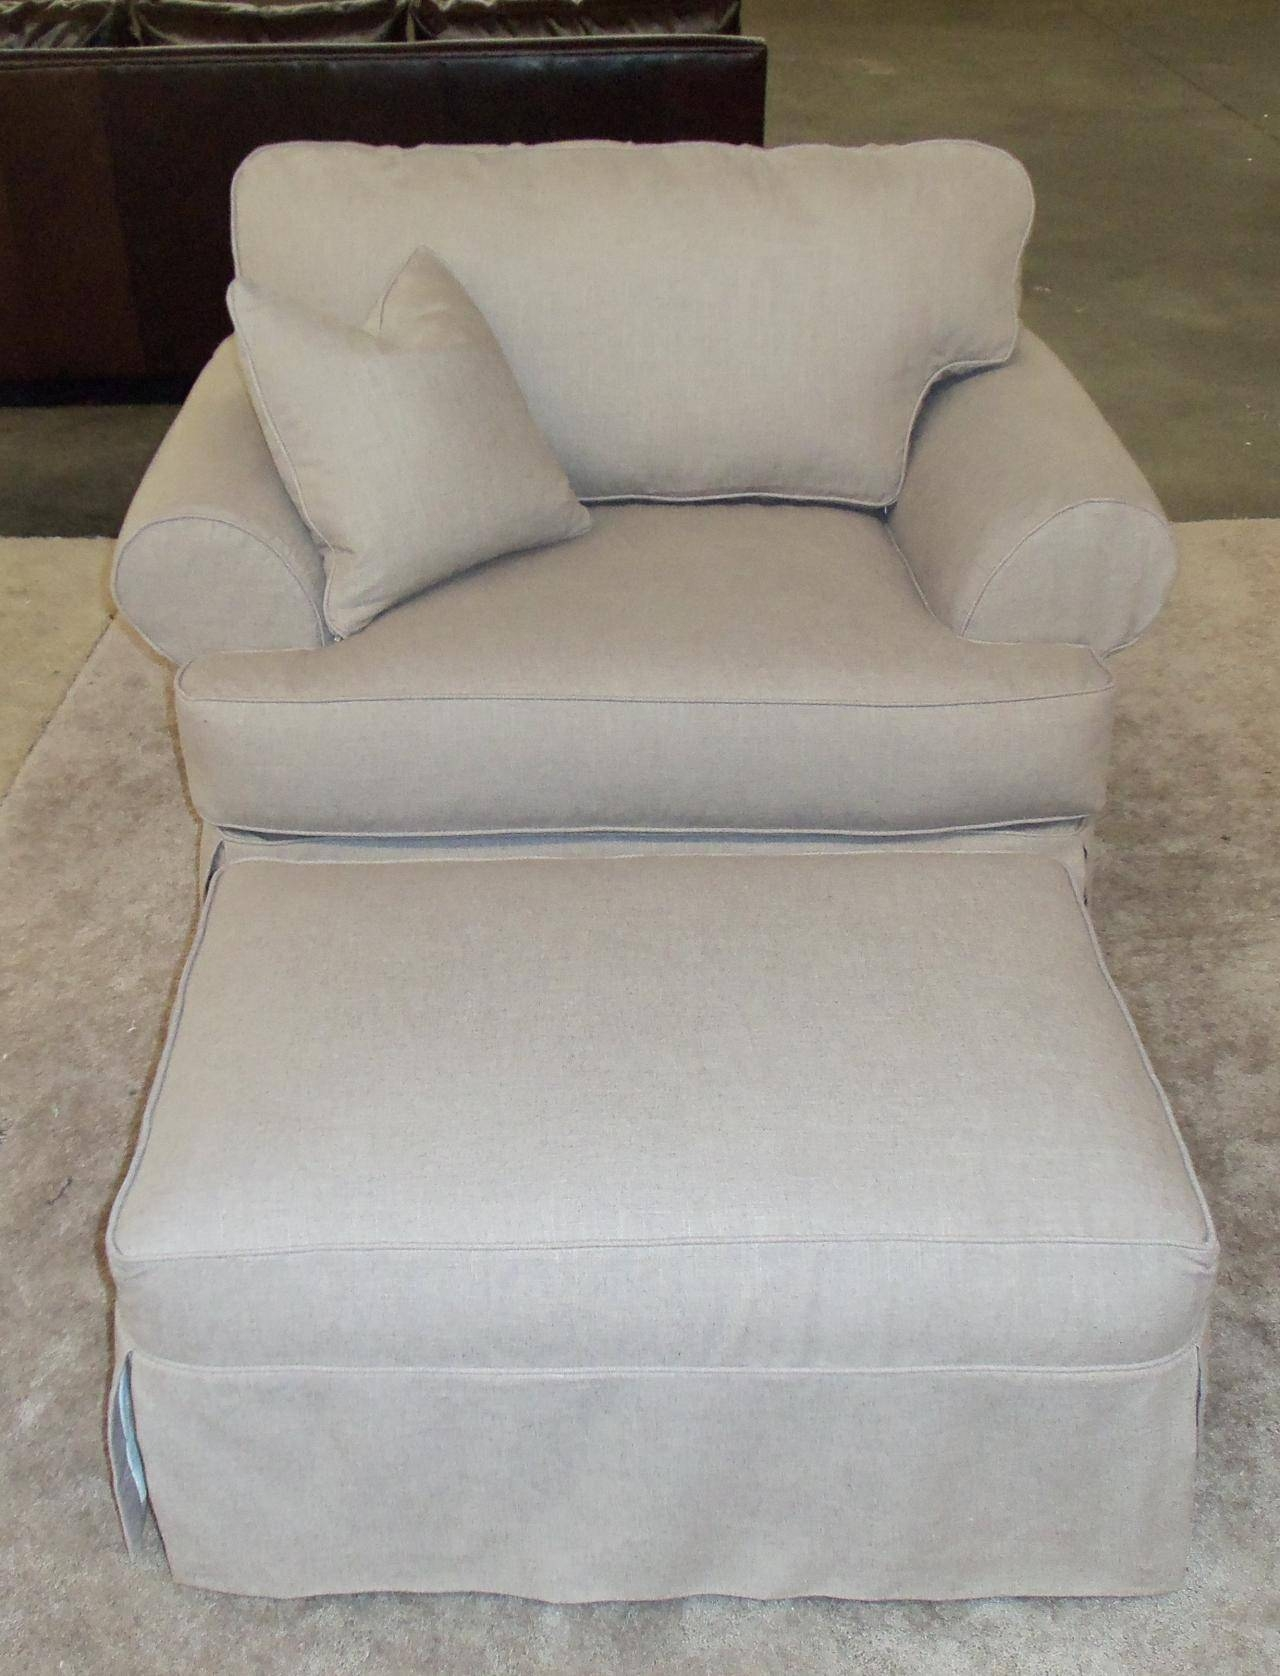 Slipcover For Oversized Chair And Ottoman View Gallery Of T Cushion Slipcovers For Large Sofas